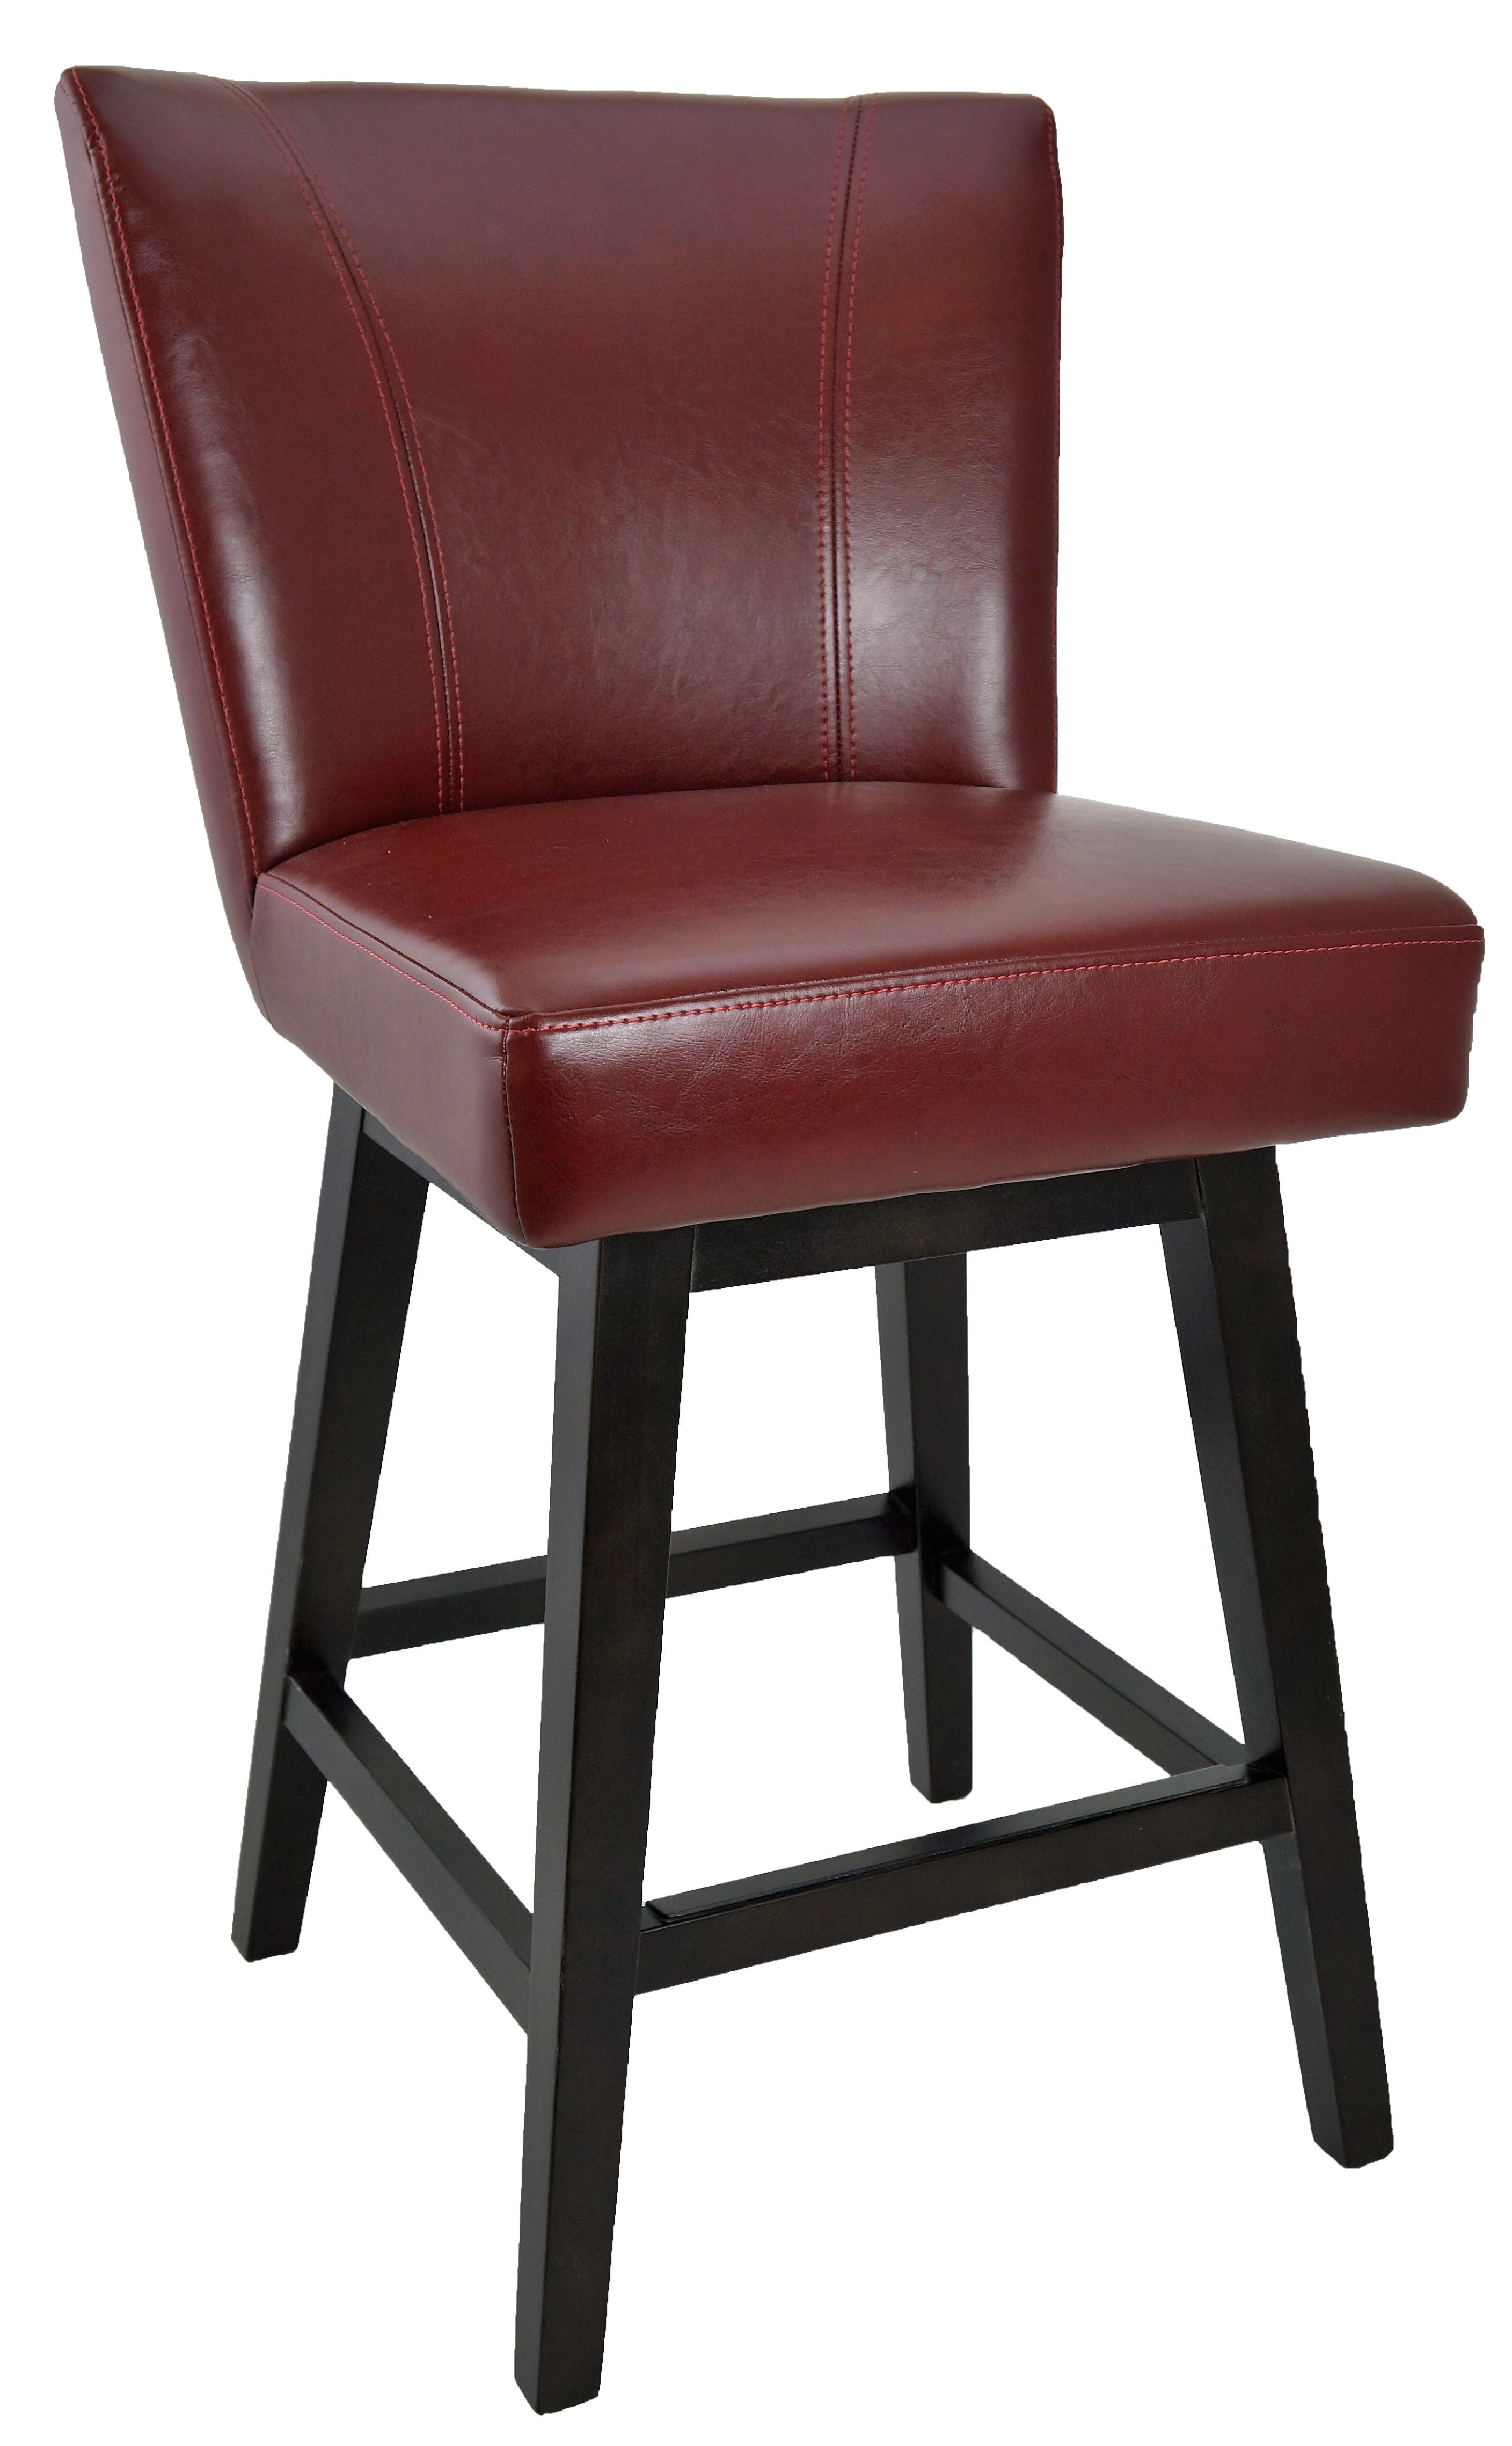 Restaurant Barstool Chairs Red Swivel Leather Counter Stool R 1223 Artefac Usa Bar Stools Swivel Counter Stools Stool